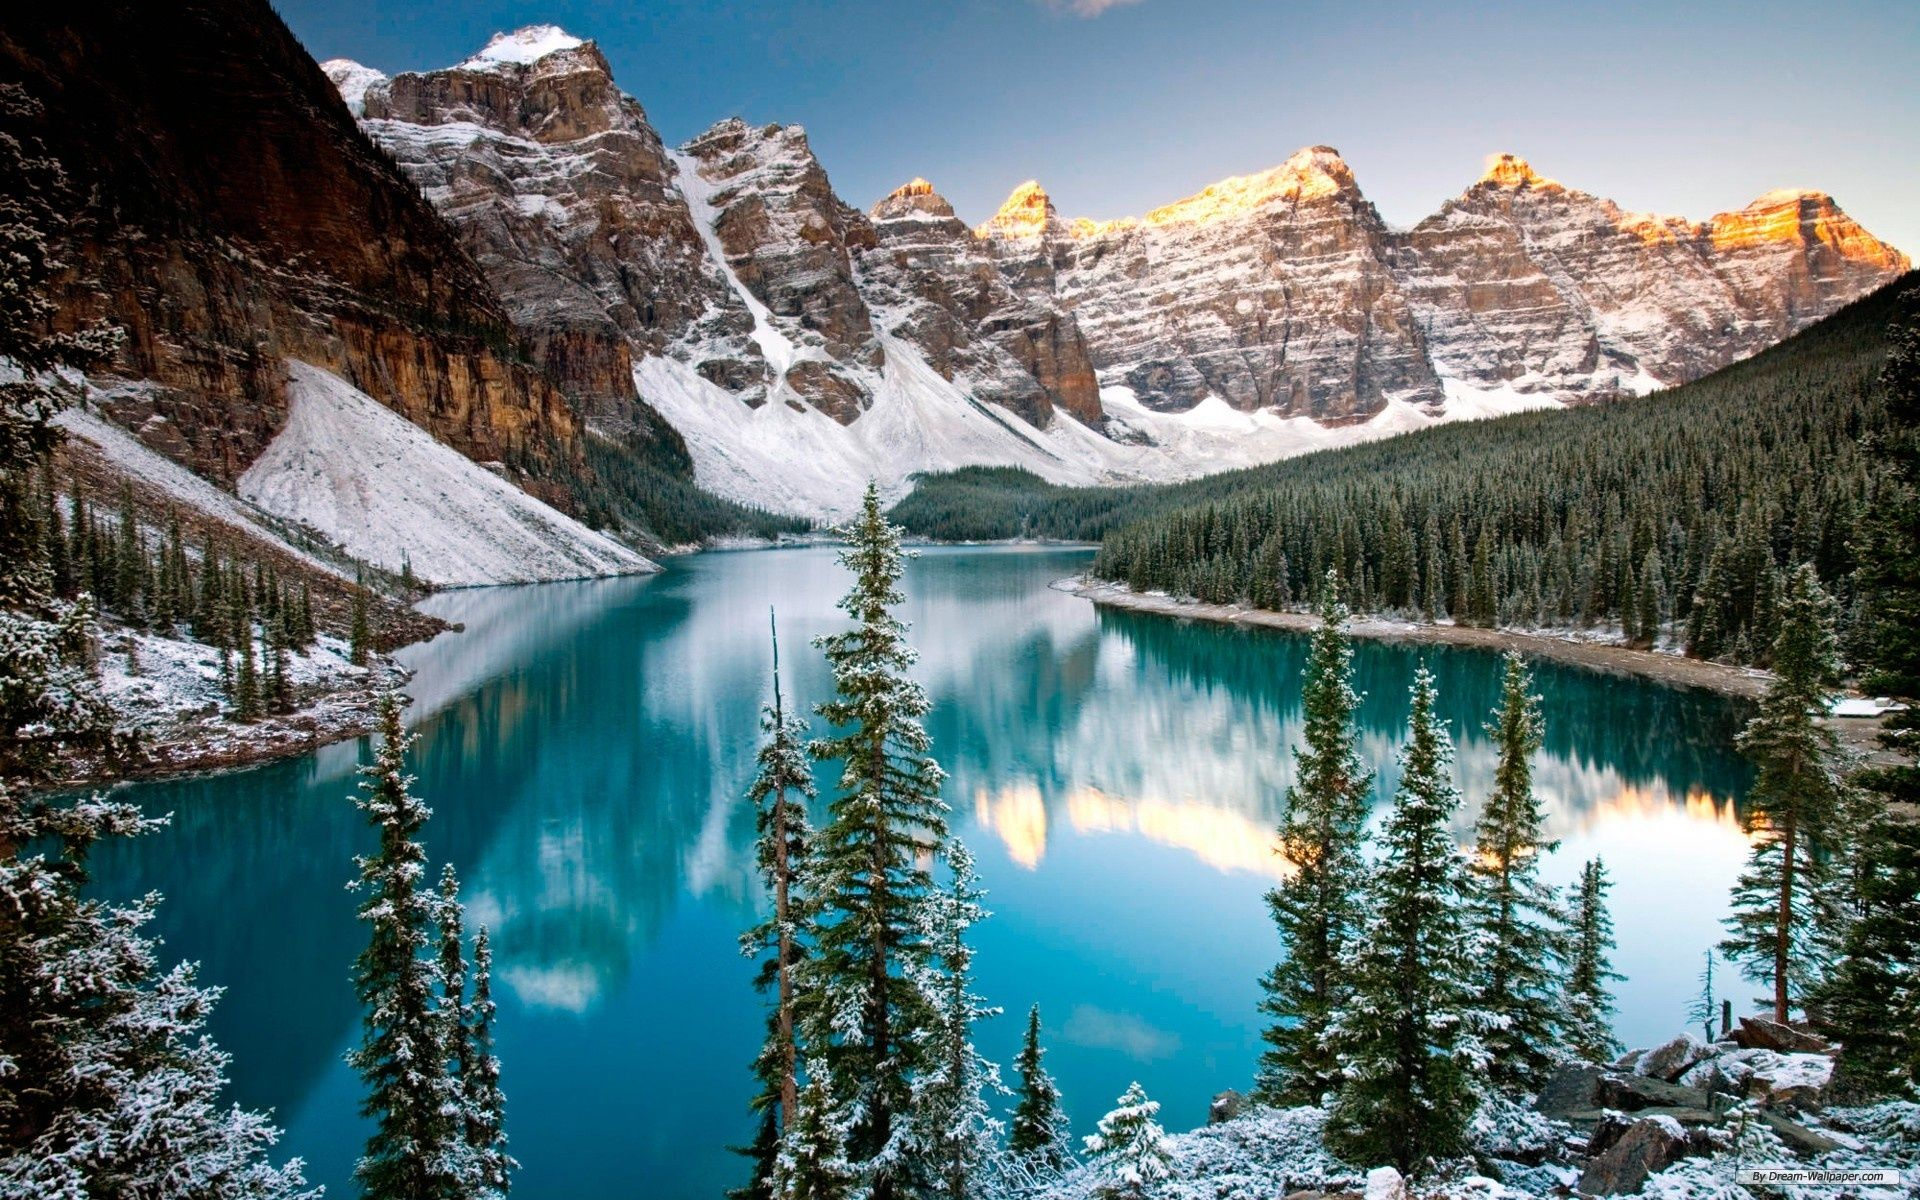 #Winter #Mountain #Lake Windows 8 #Wallpaper ~ #Windows8 #Pinterest #nature